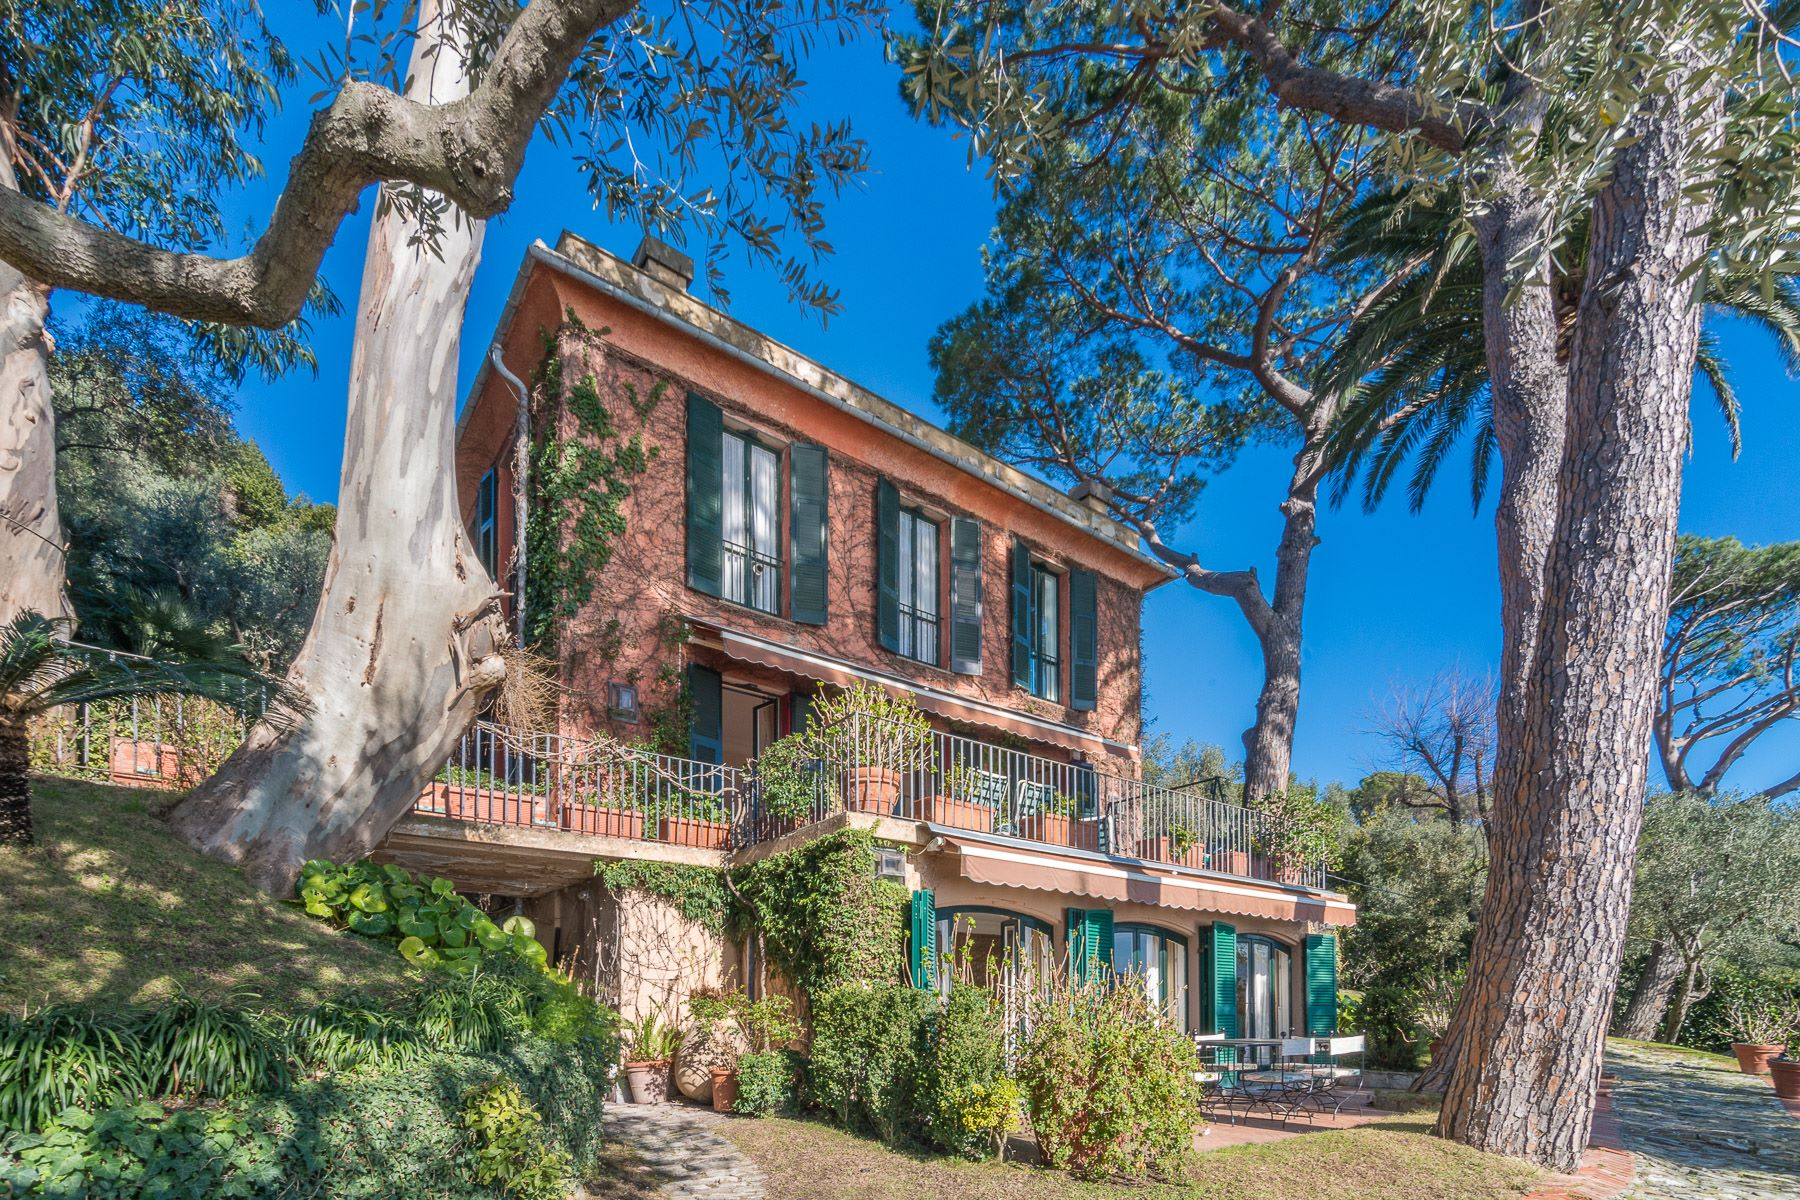 Single Family Home for Sale at Majestic villa overlooking the Italian Riviera Via Privata Repellini Santa Margherita Ligure, Genoa 16038 Italy